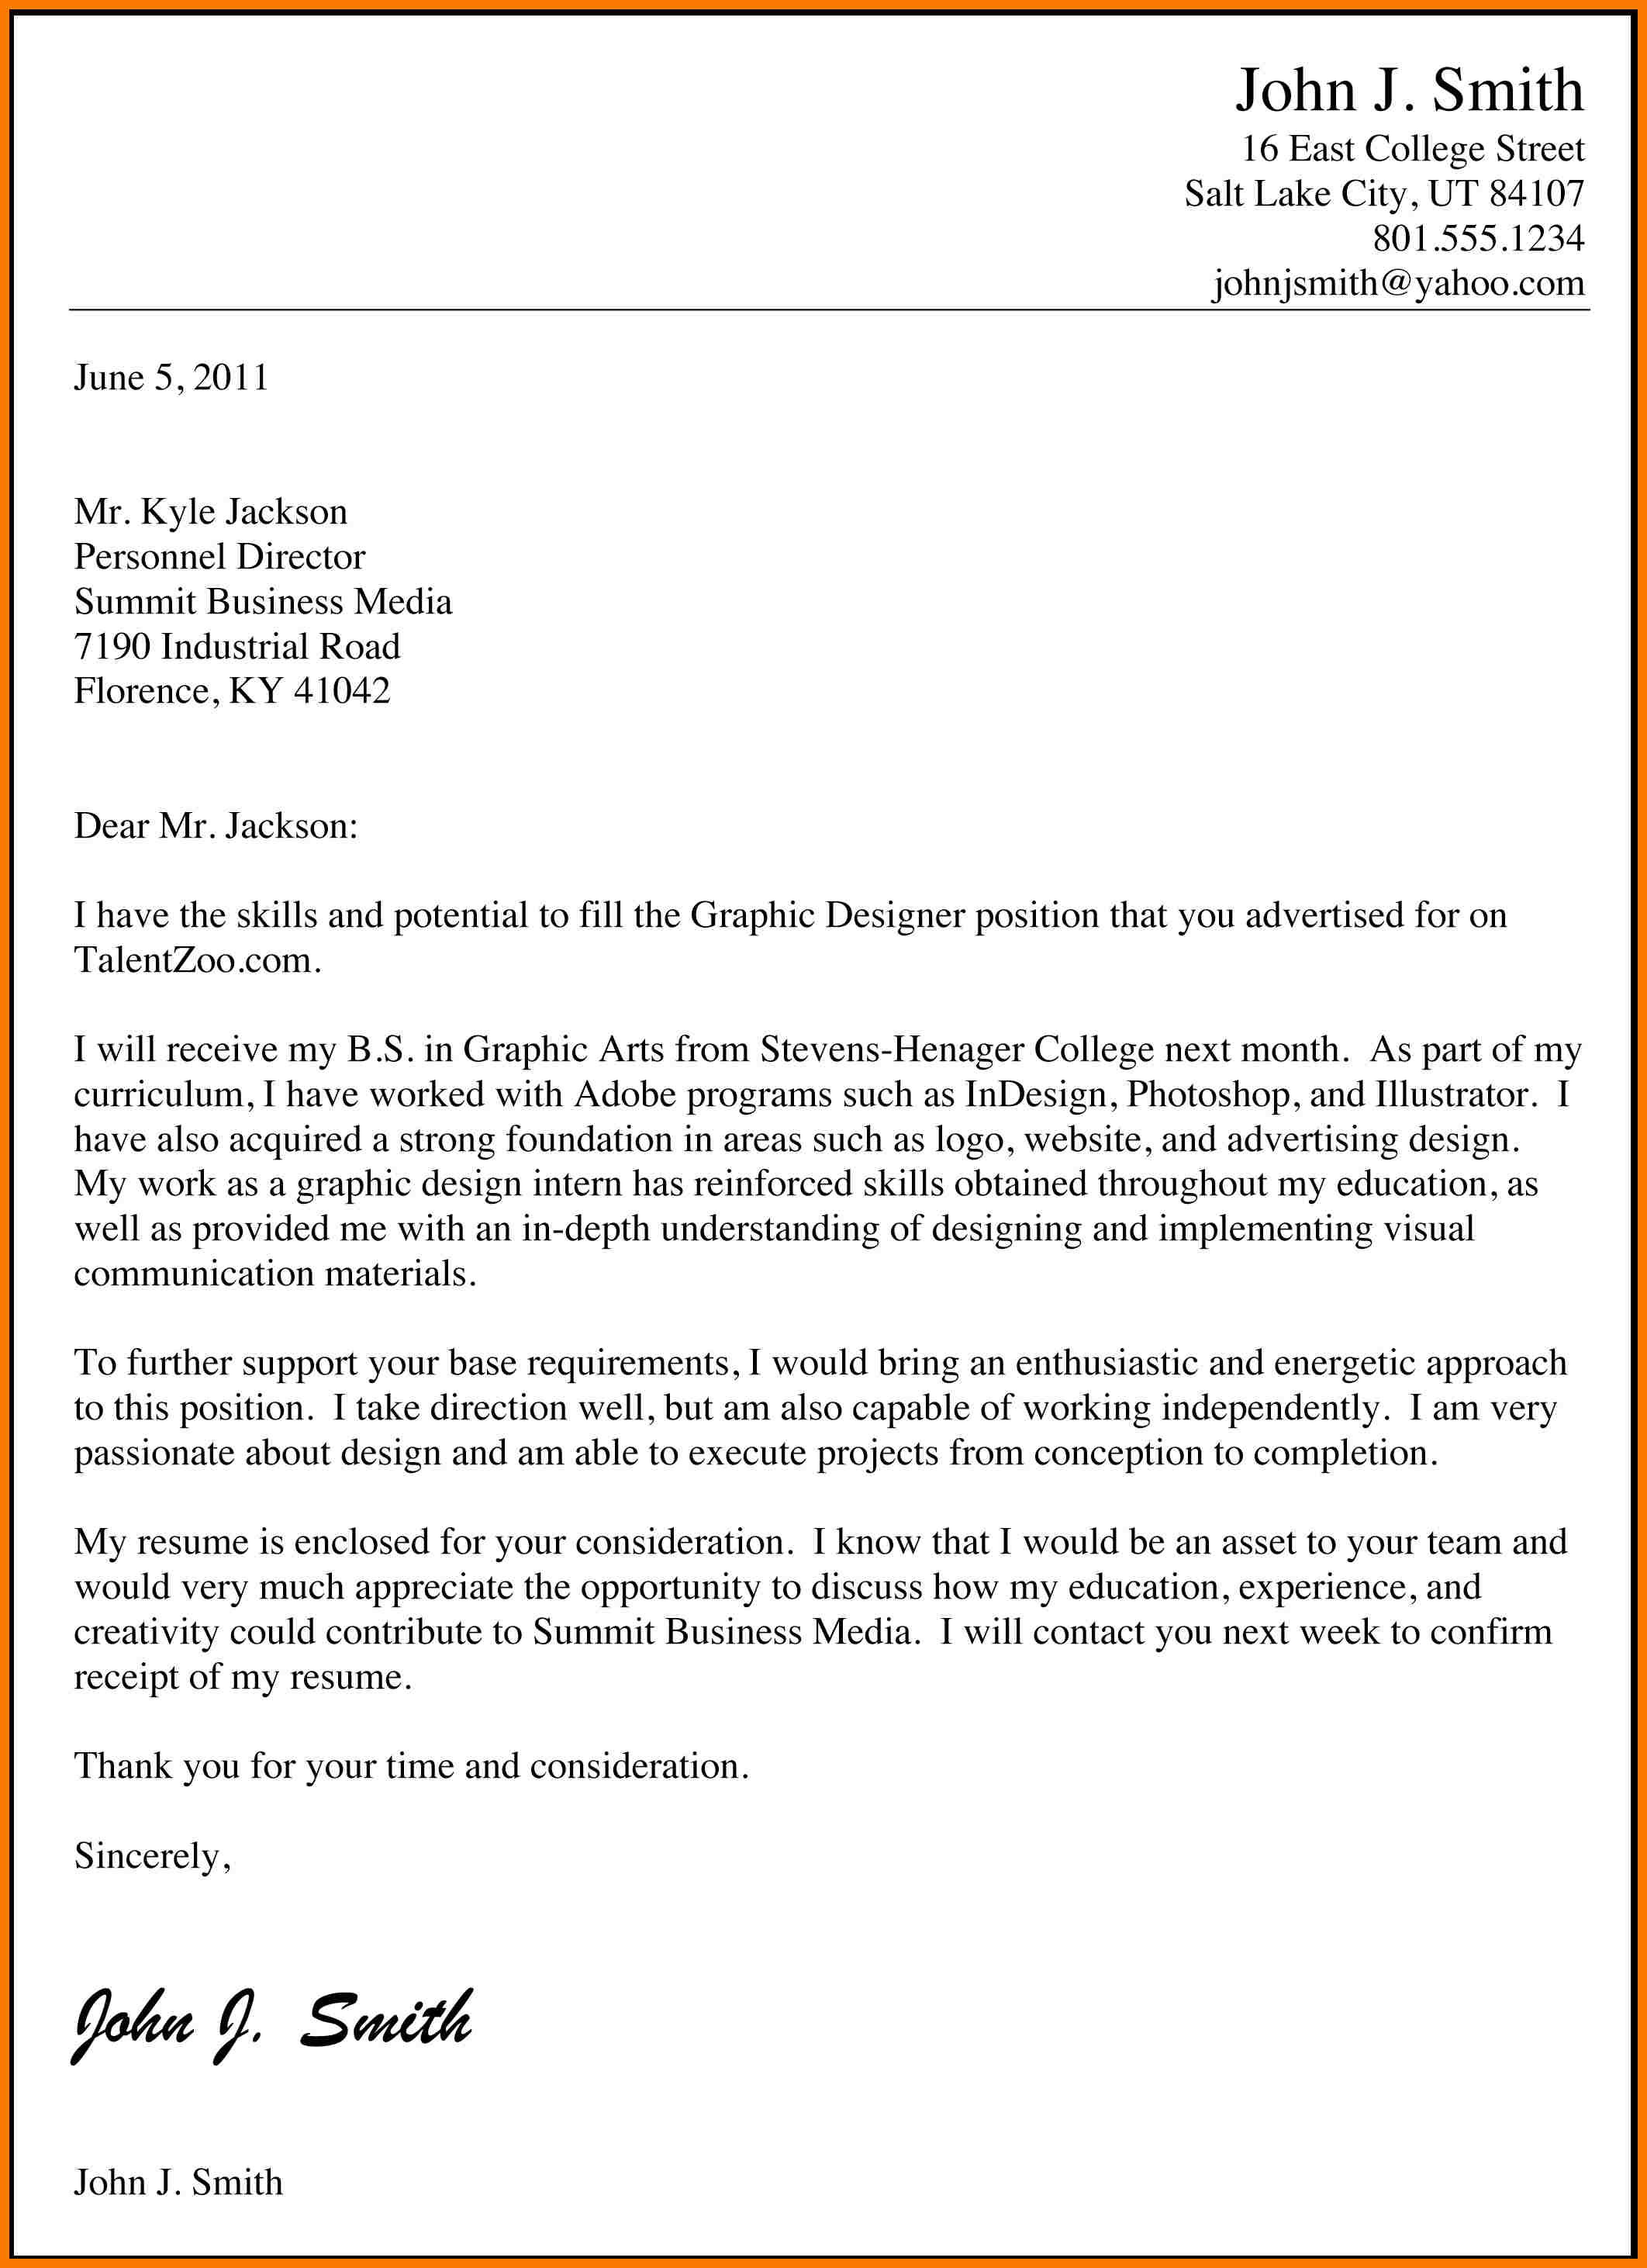 9 Official Job Application Letter Examples  PDF  Examples